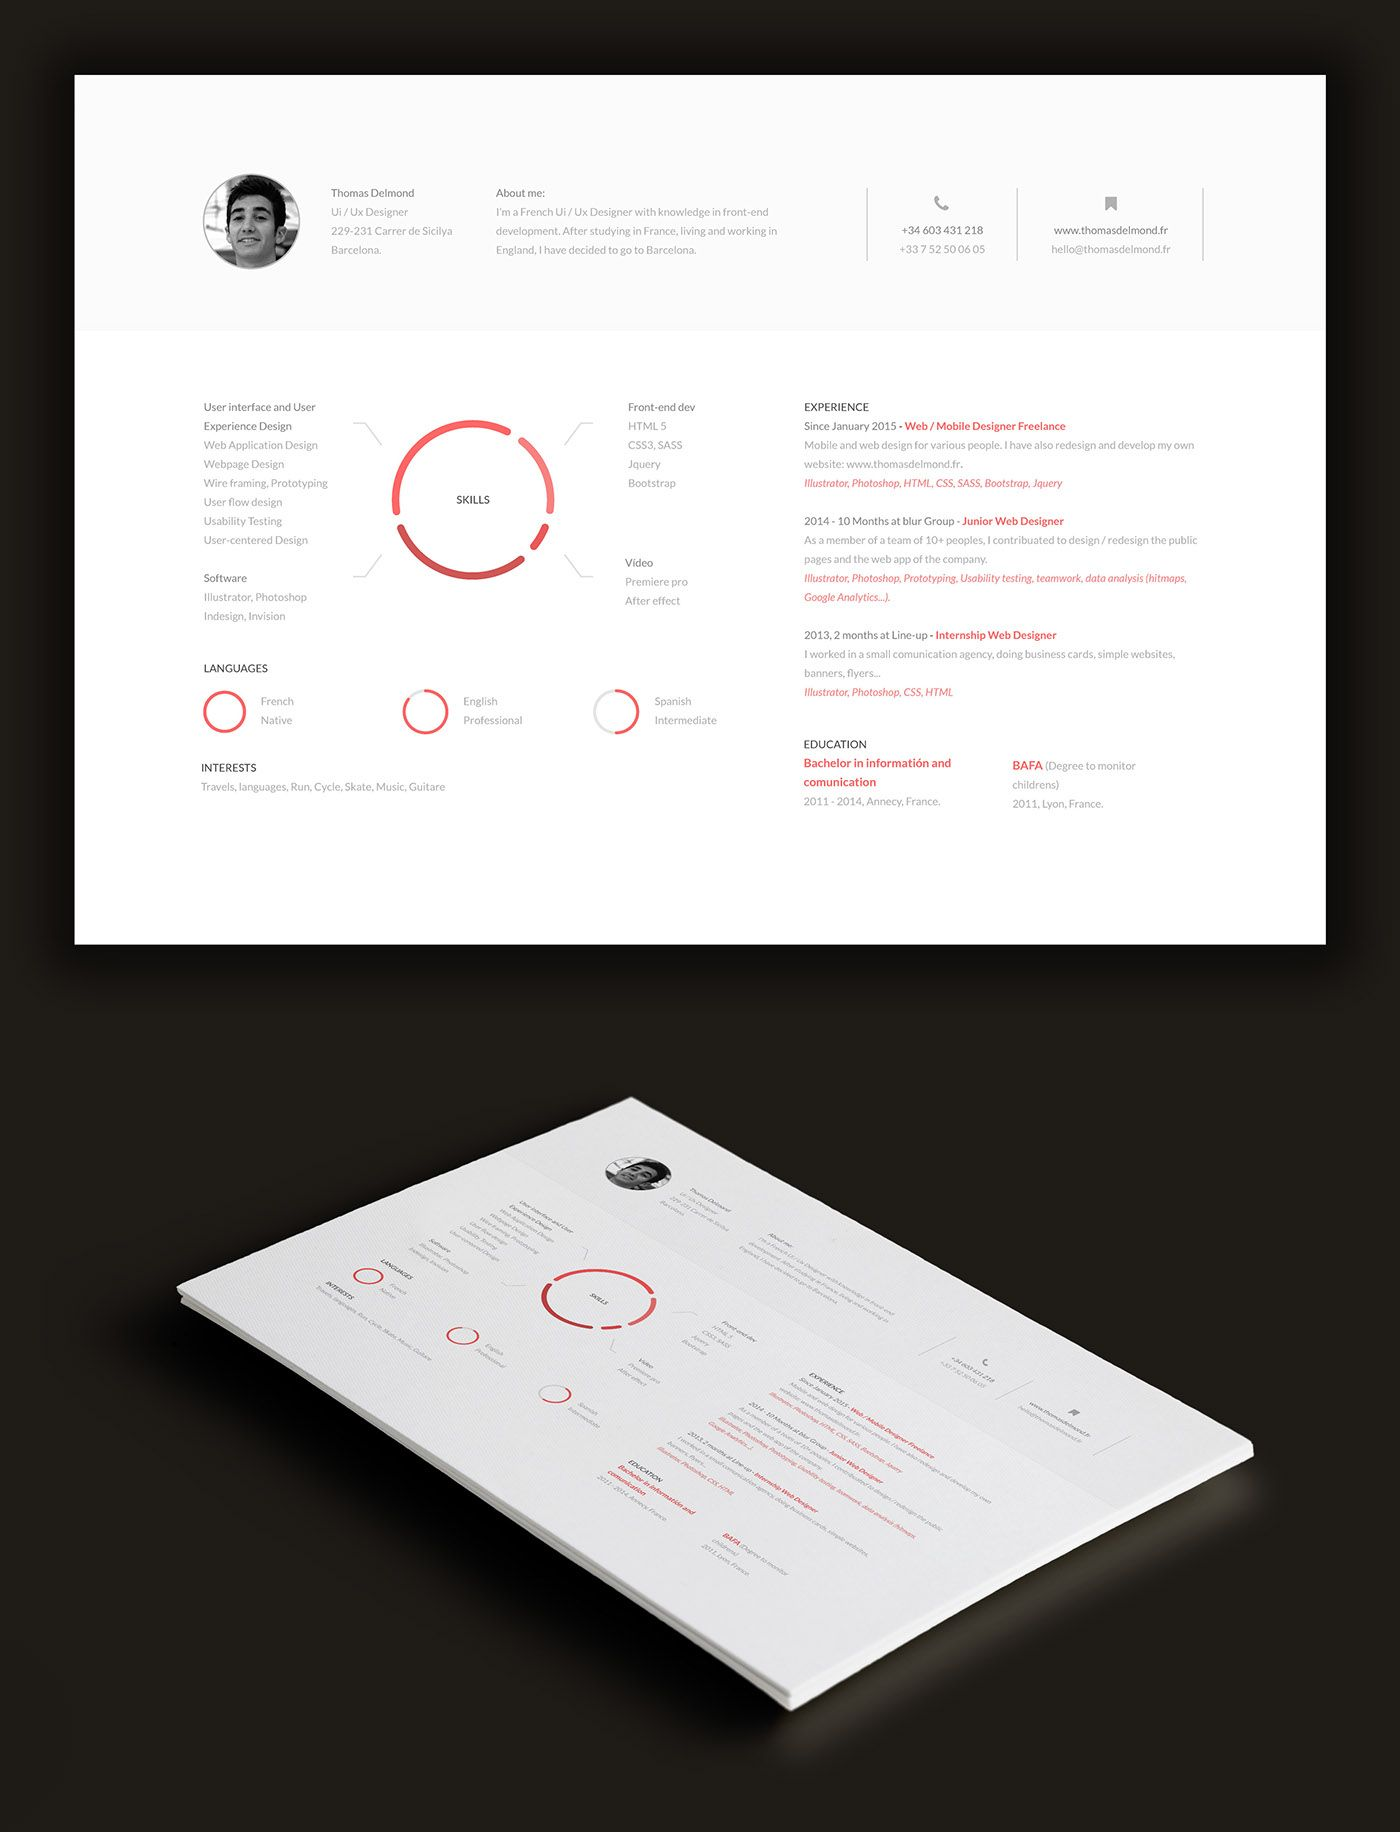 Web Testing Resume Minimalistic Cv On Behance  Graphic Design  Pinterest  Donut .